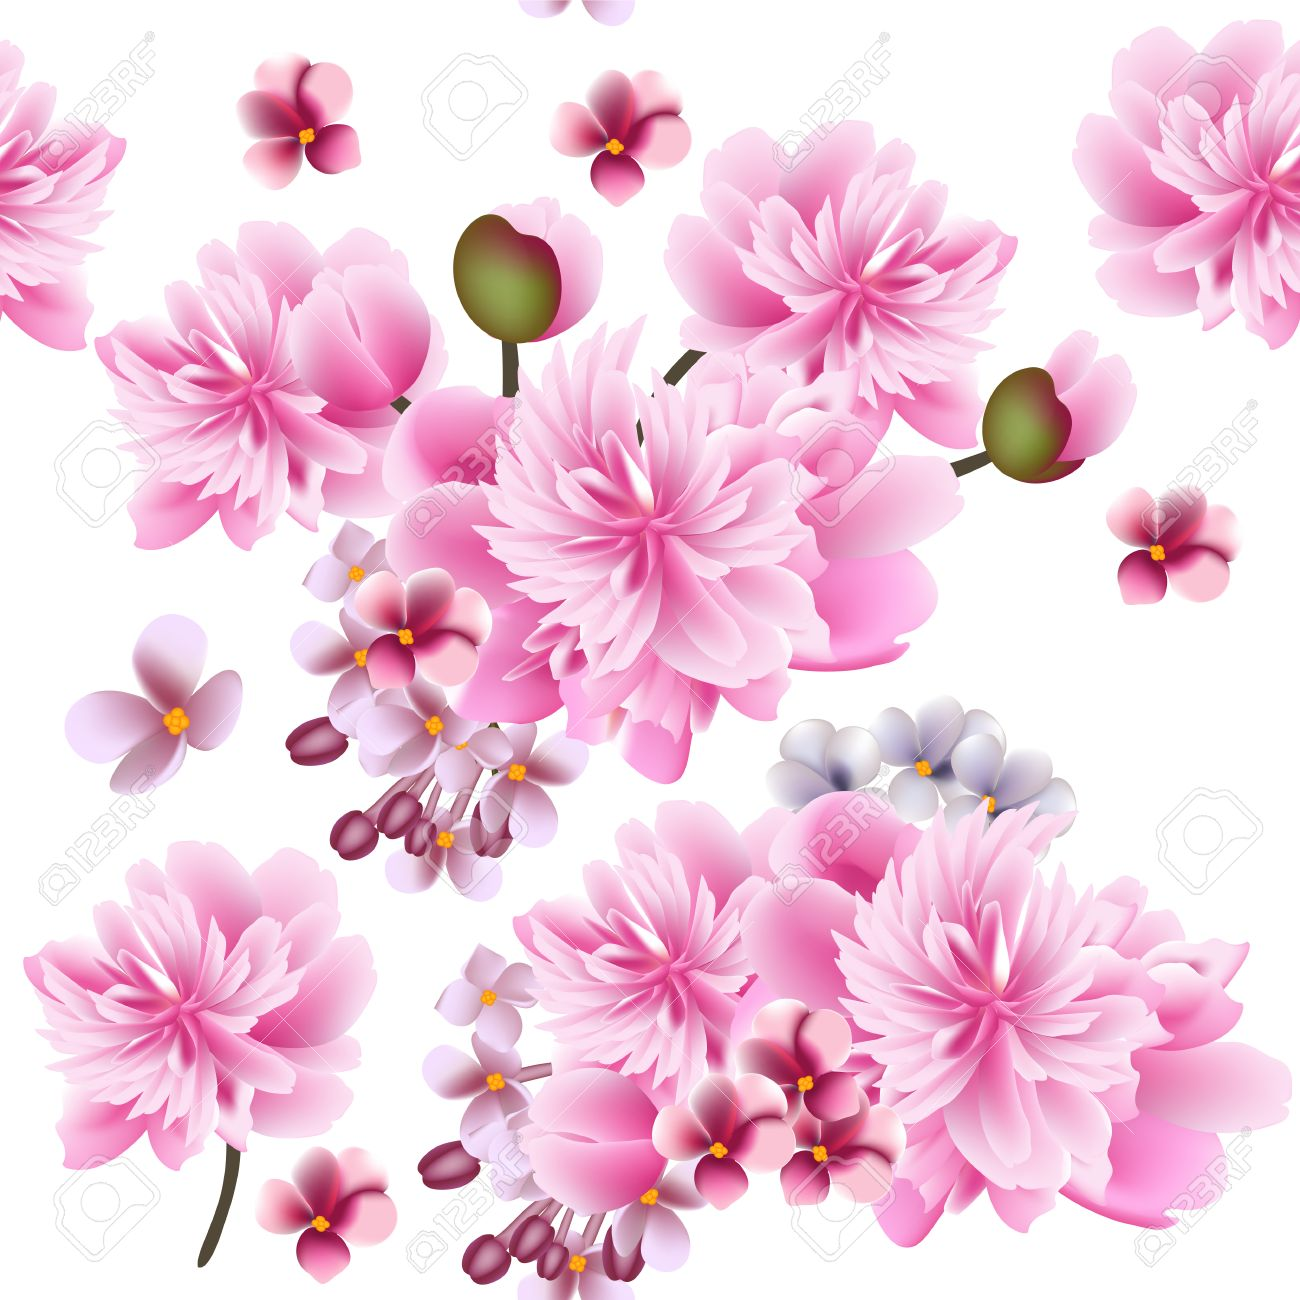 Vector Seamless Pattern For Wallpaper Design With Peony Flowers